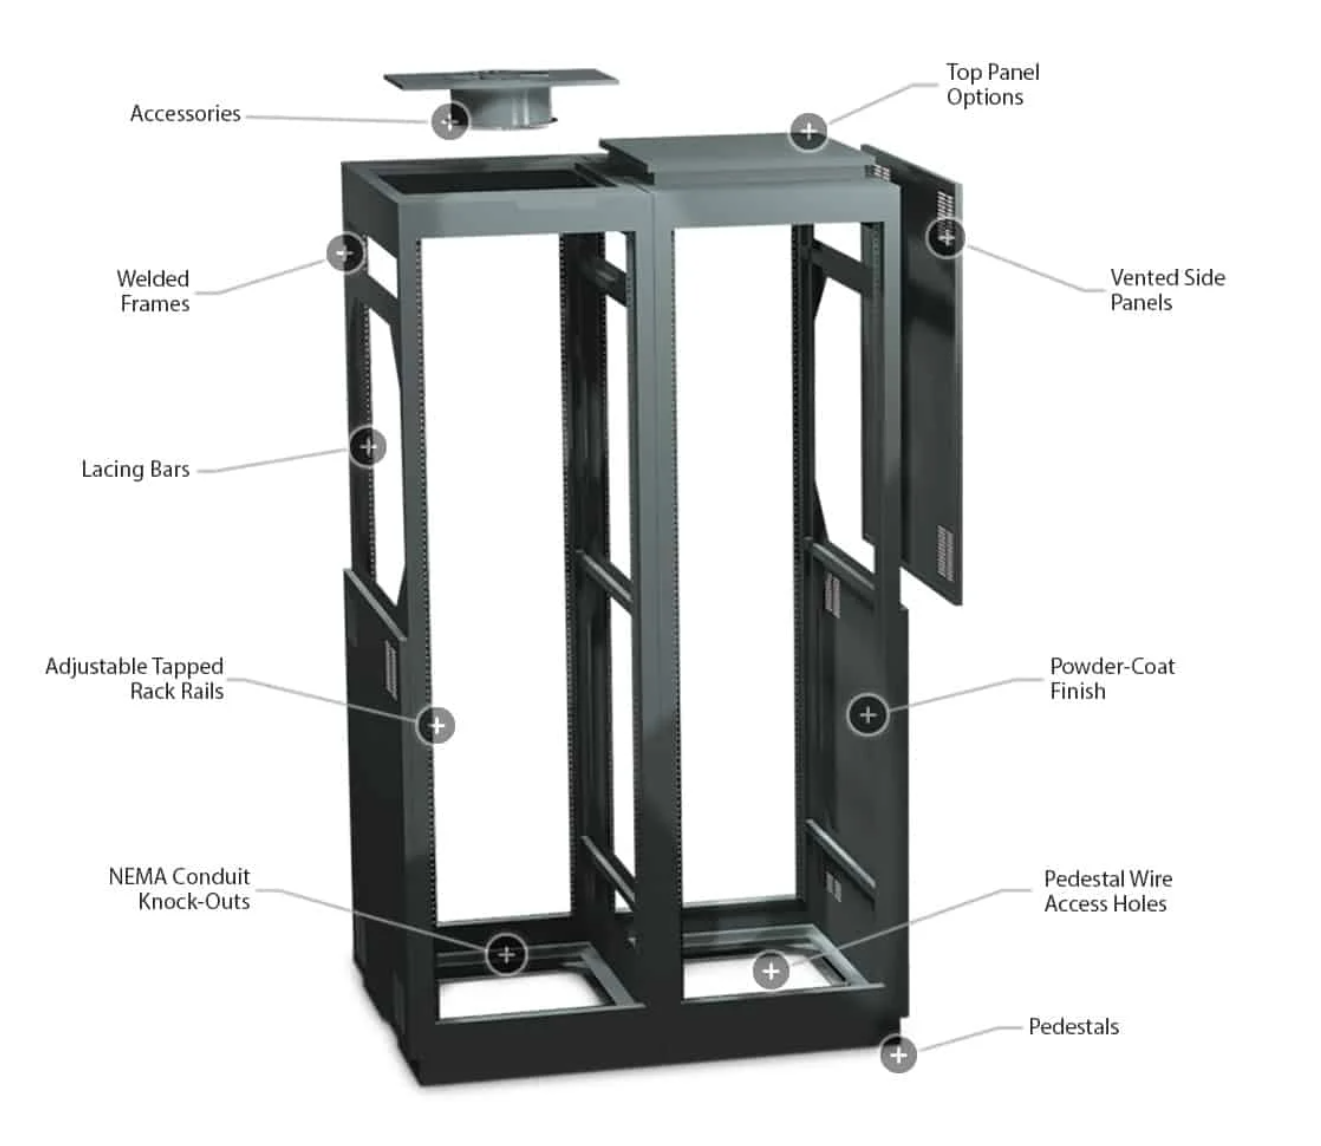 Winsted Pro Series II Equipment Racks features and accessories diagram